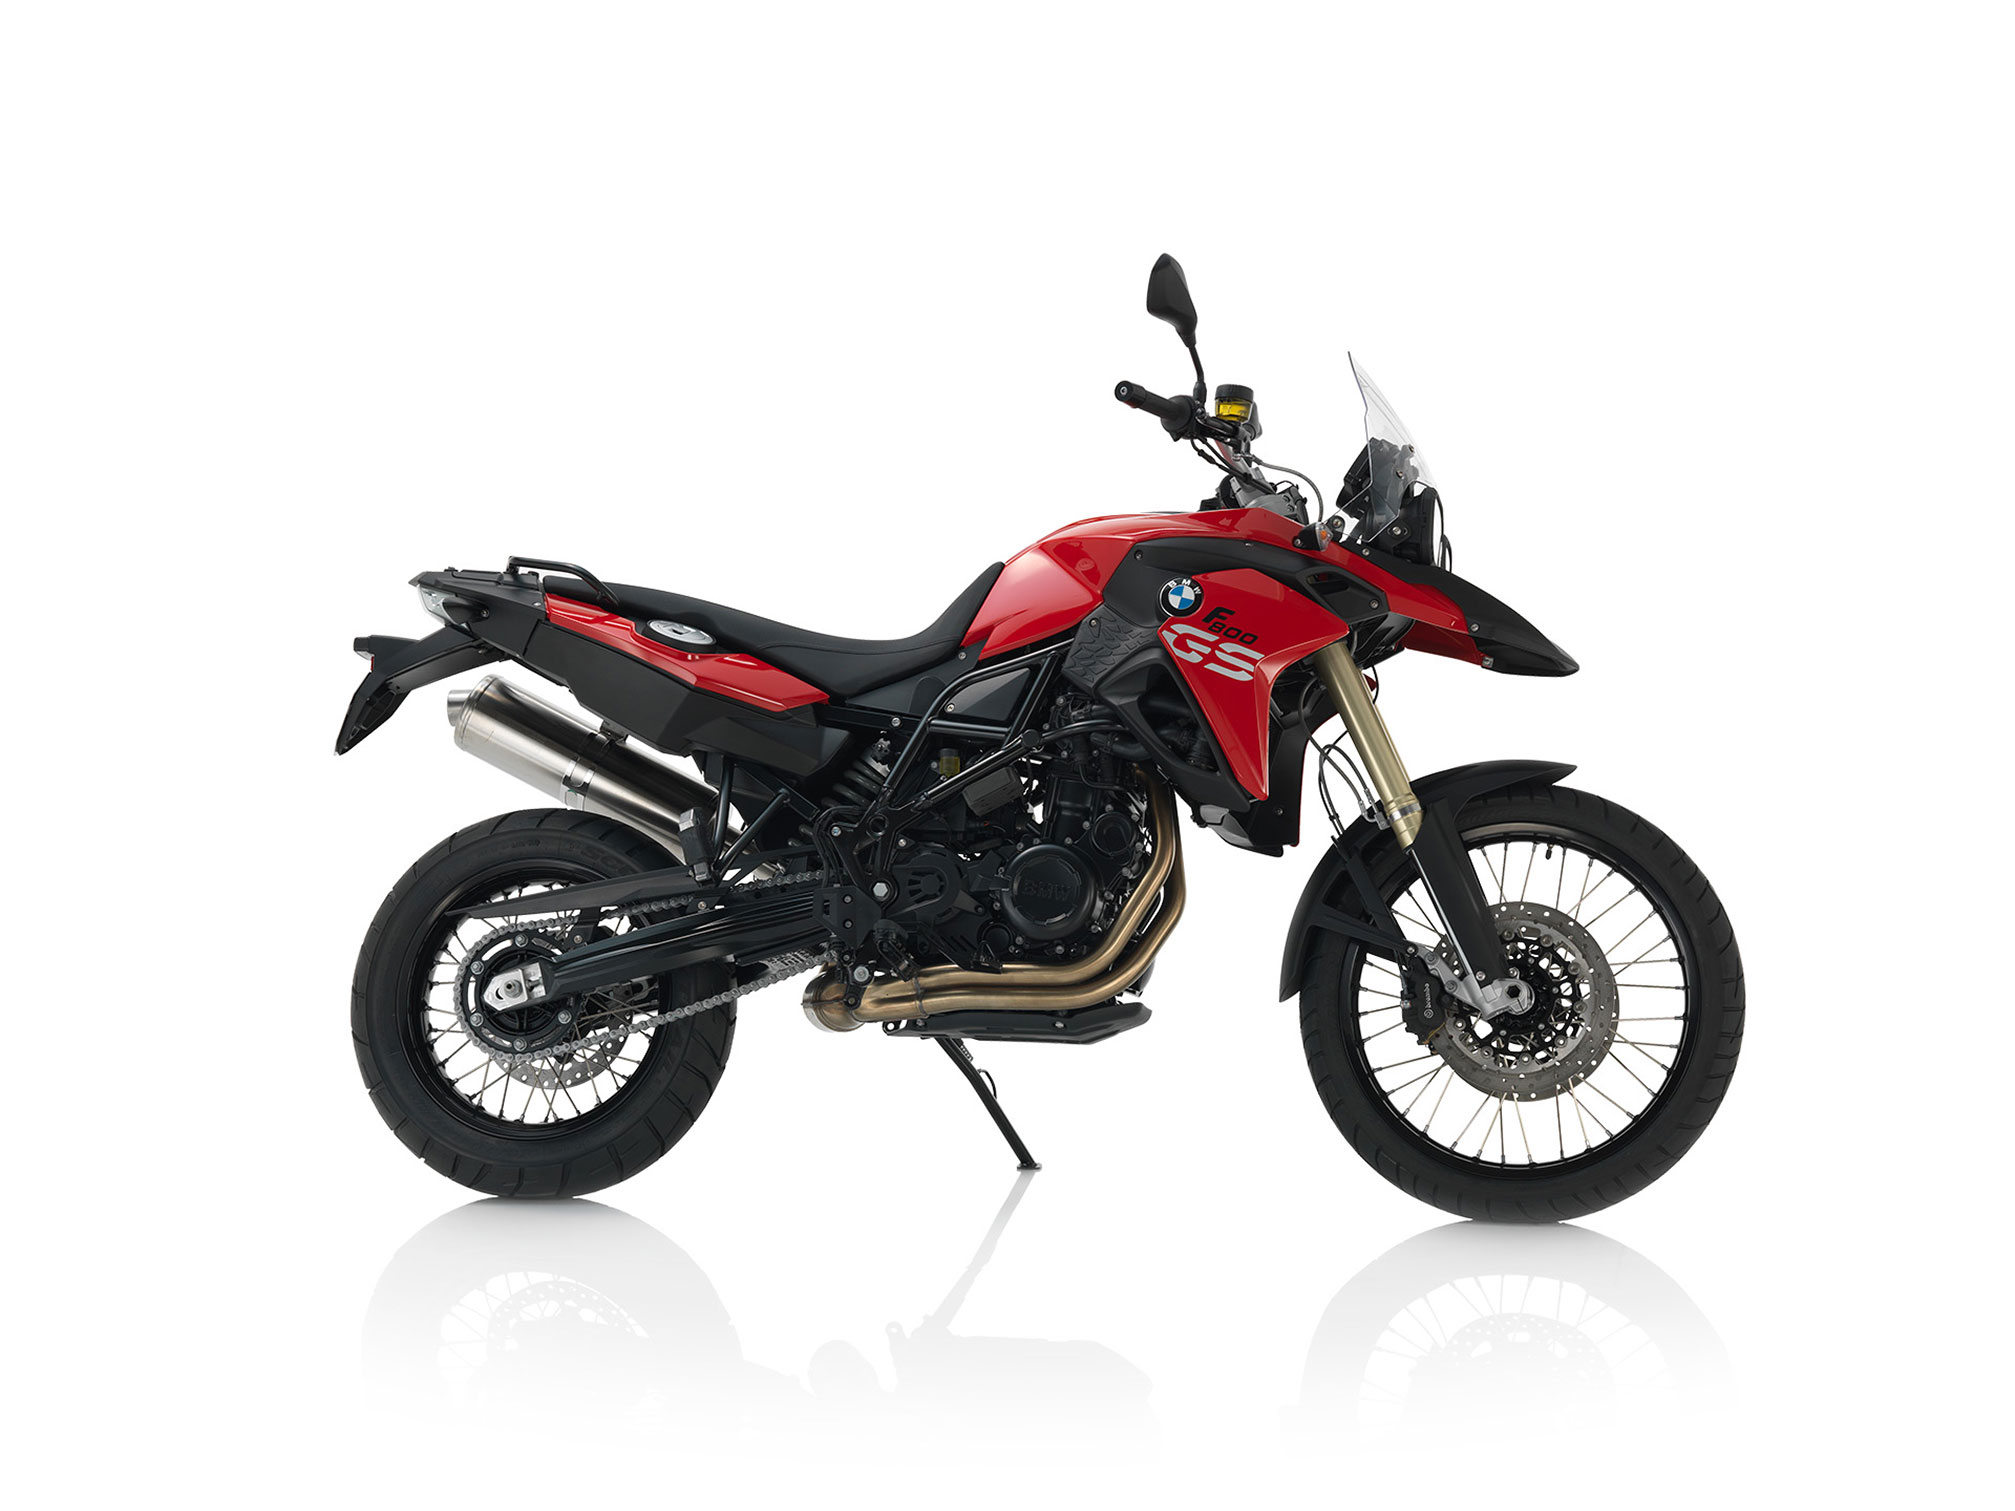 BMW F800 GS Motorcycle and scooter rentals in Barcelona (Spain)